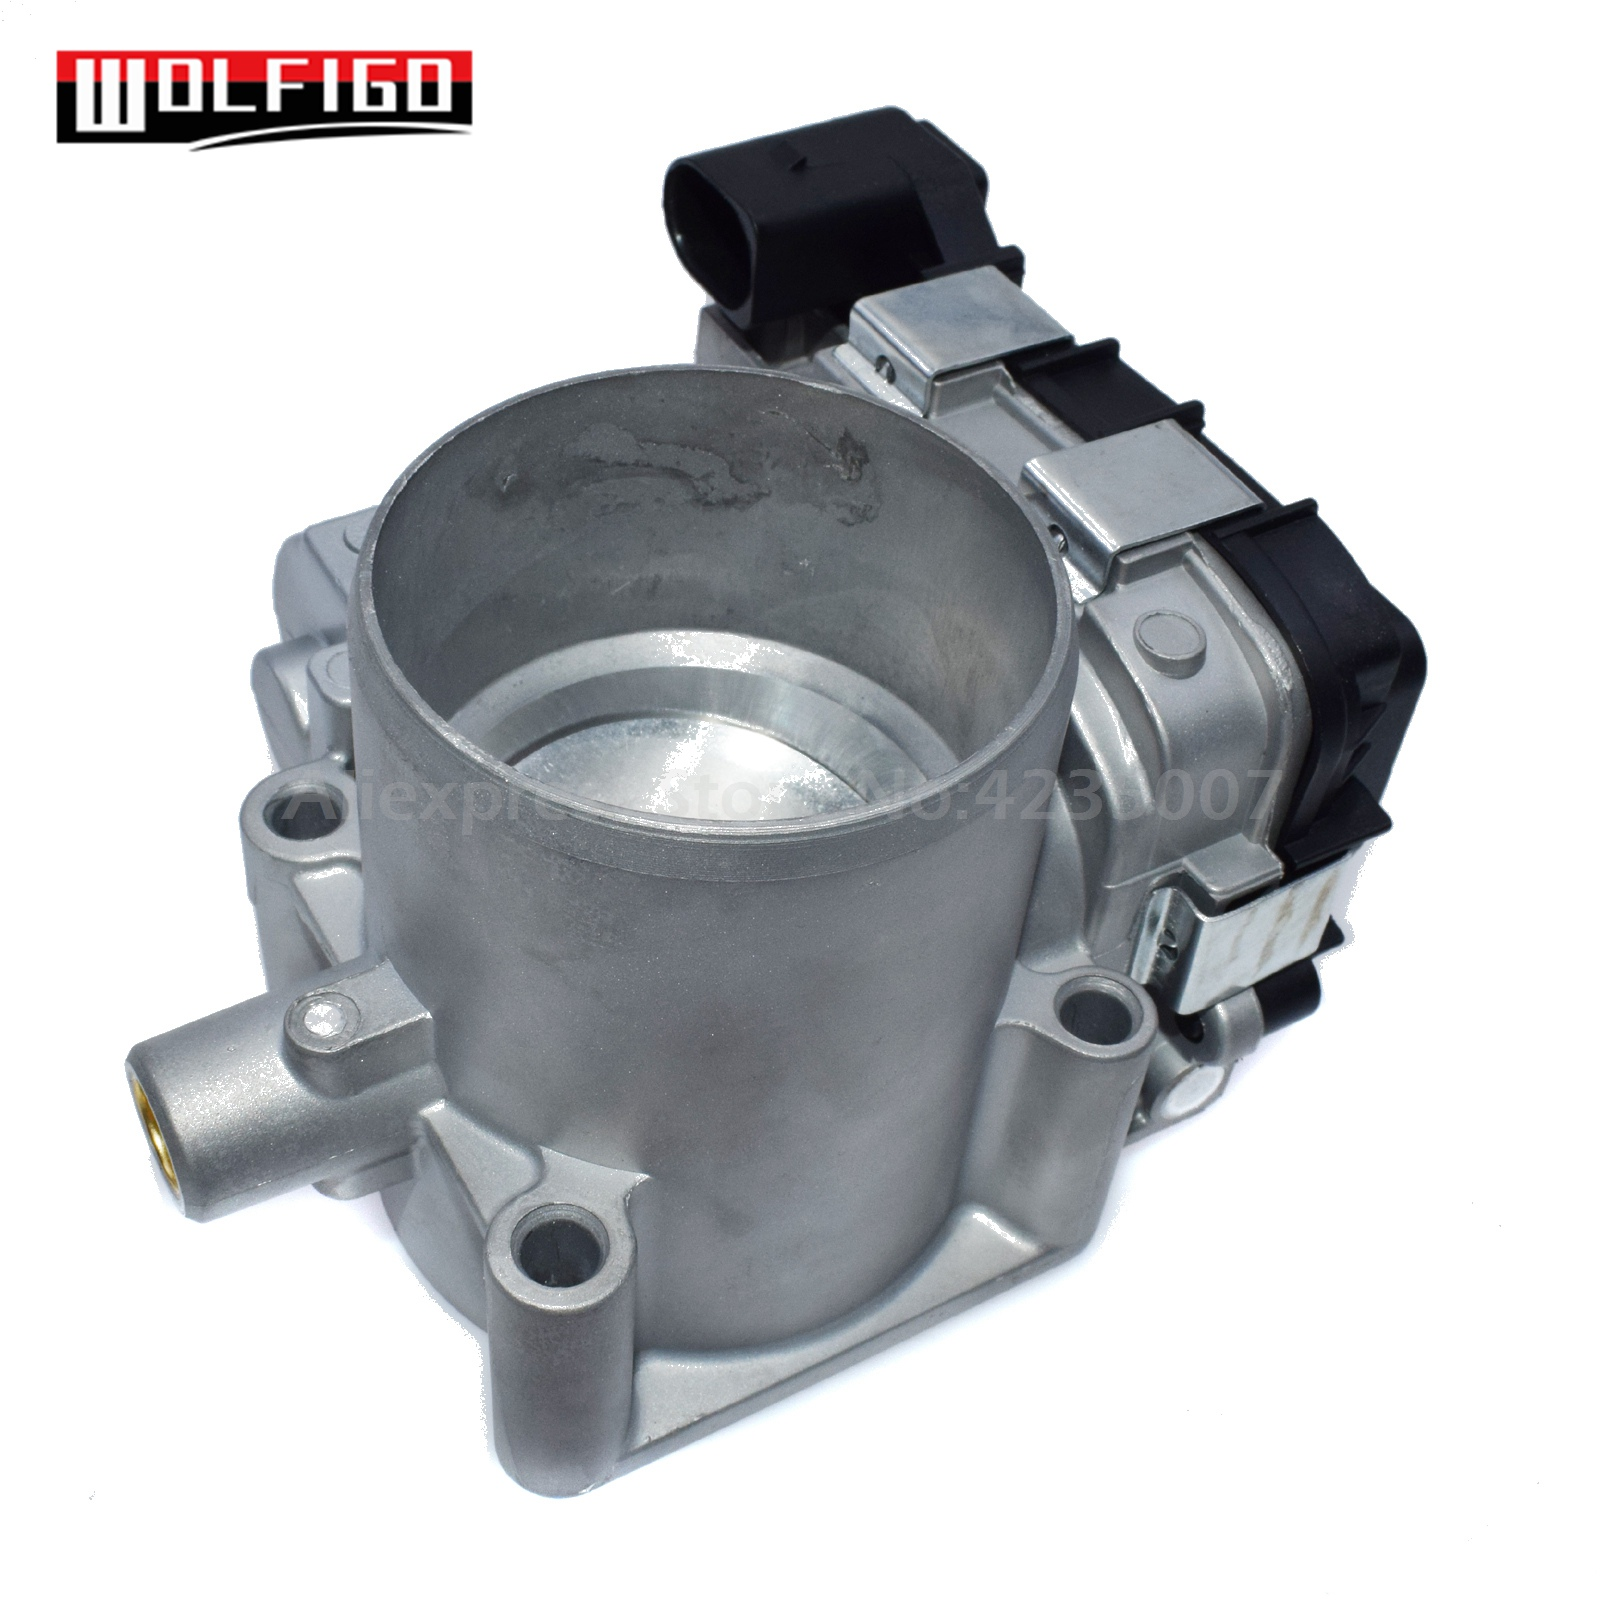 WOLFIGO New Throttle Body Assembly For VW Touran Golf 1.4 TSI 03C133062AA, 03C133062D, 03C 133 062 D,03C 133 062 AA